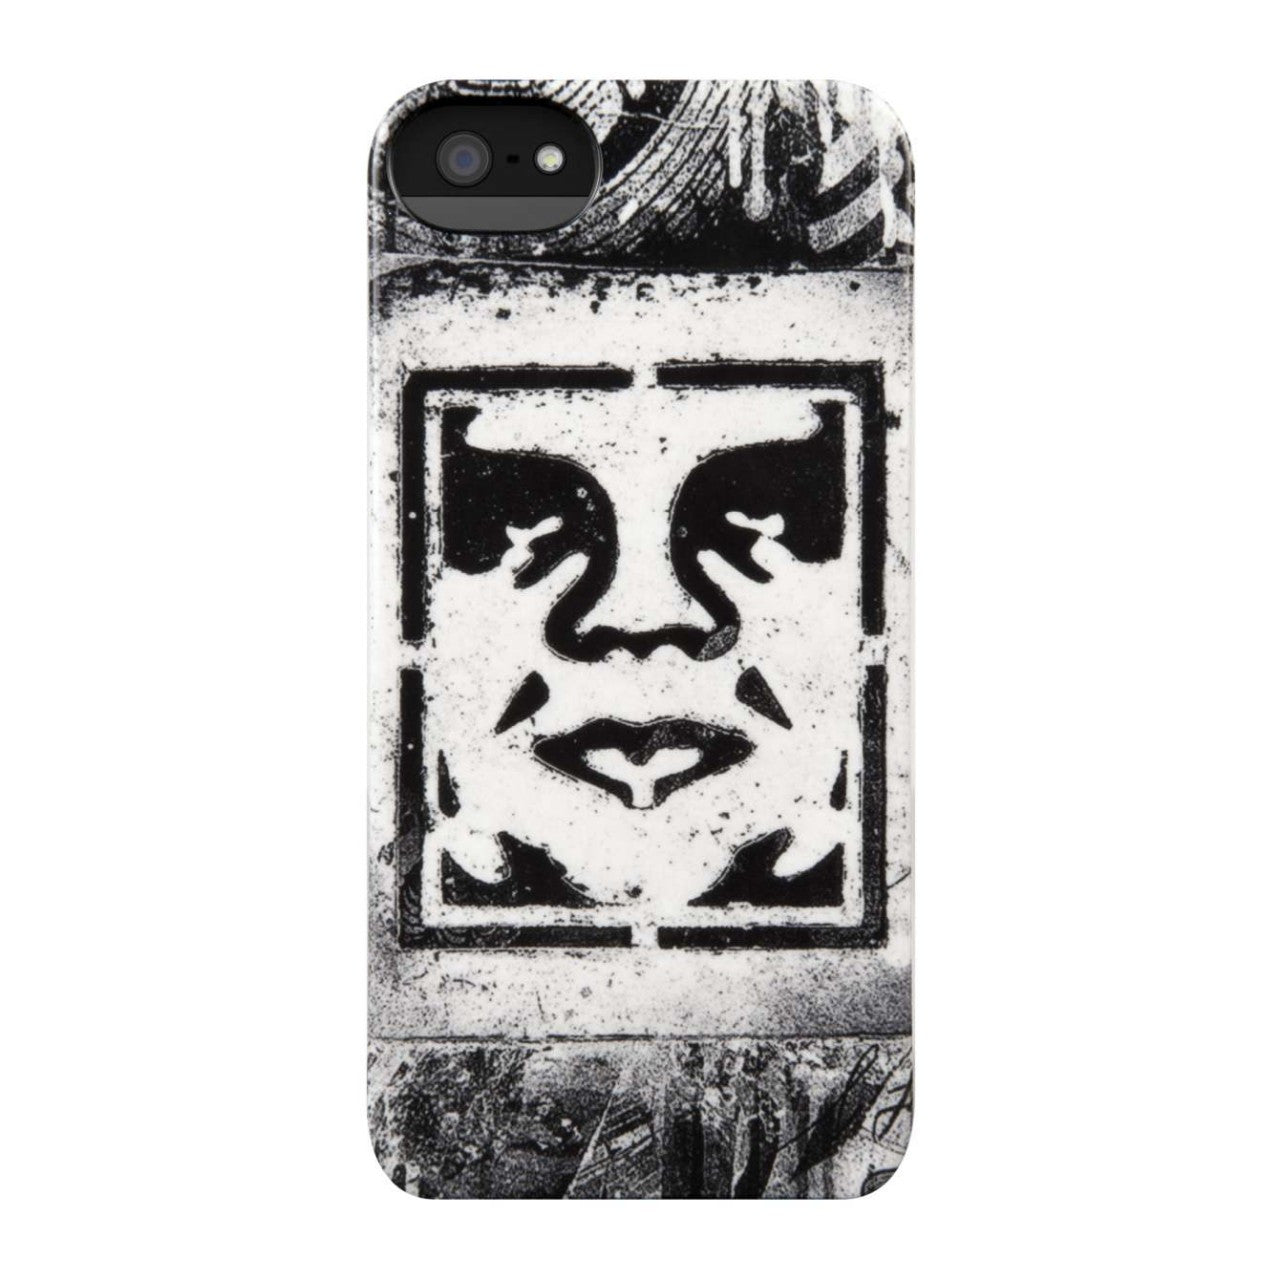 Incase x Shepard Fairey - Icon Stencil Case for iPhone 5 - The Giant Peach - 1